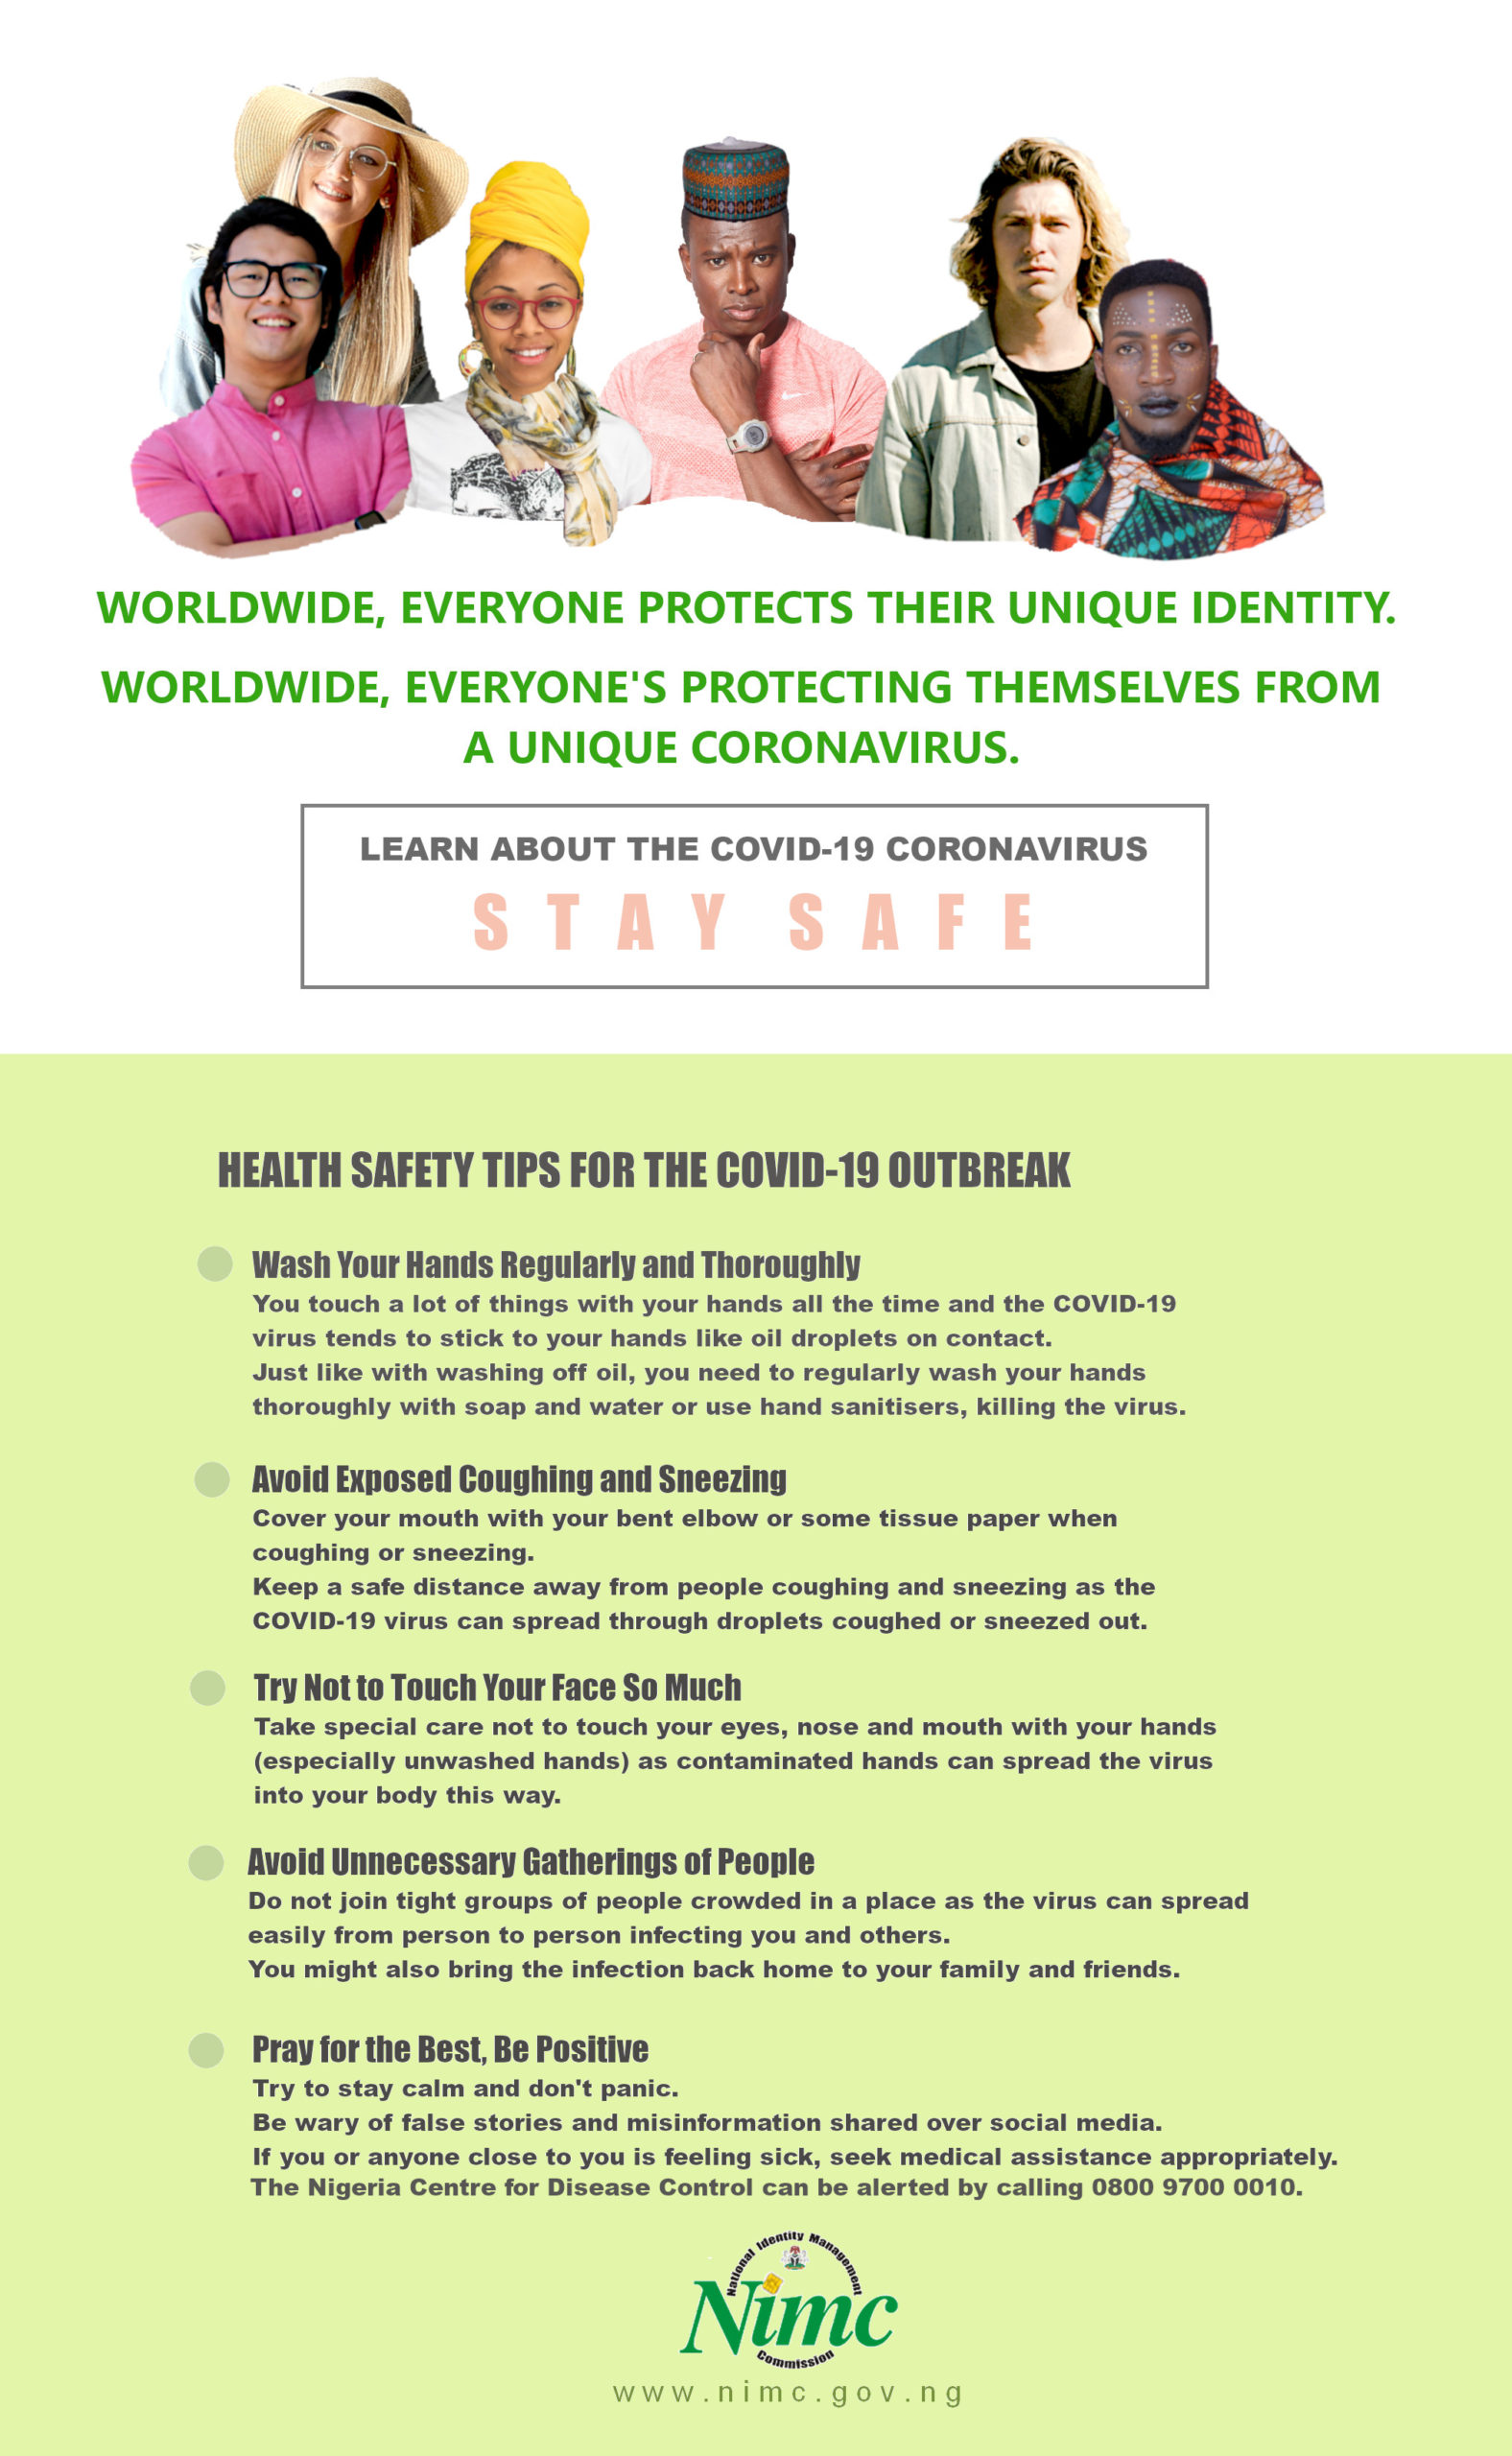 Health Safety Tips for the COVID-19 Outbreak